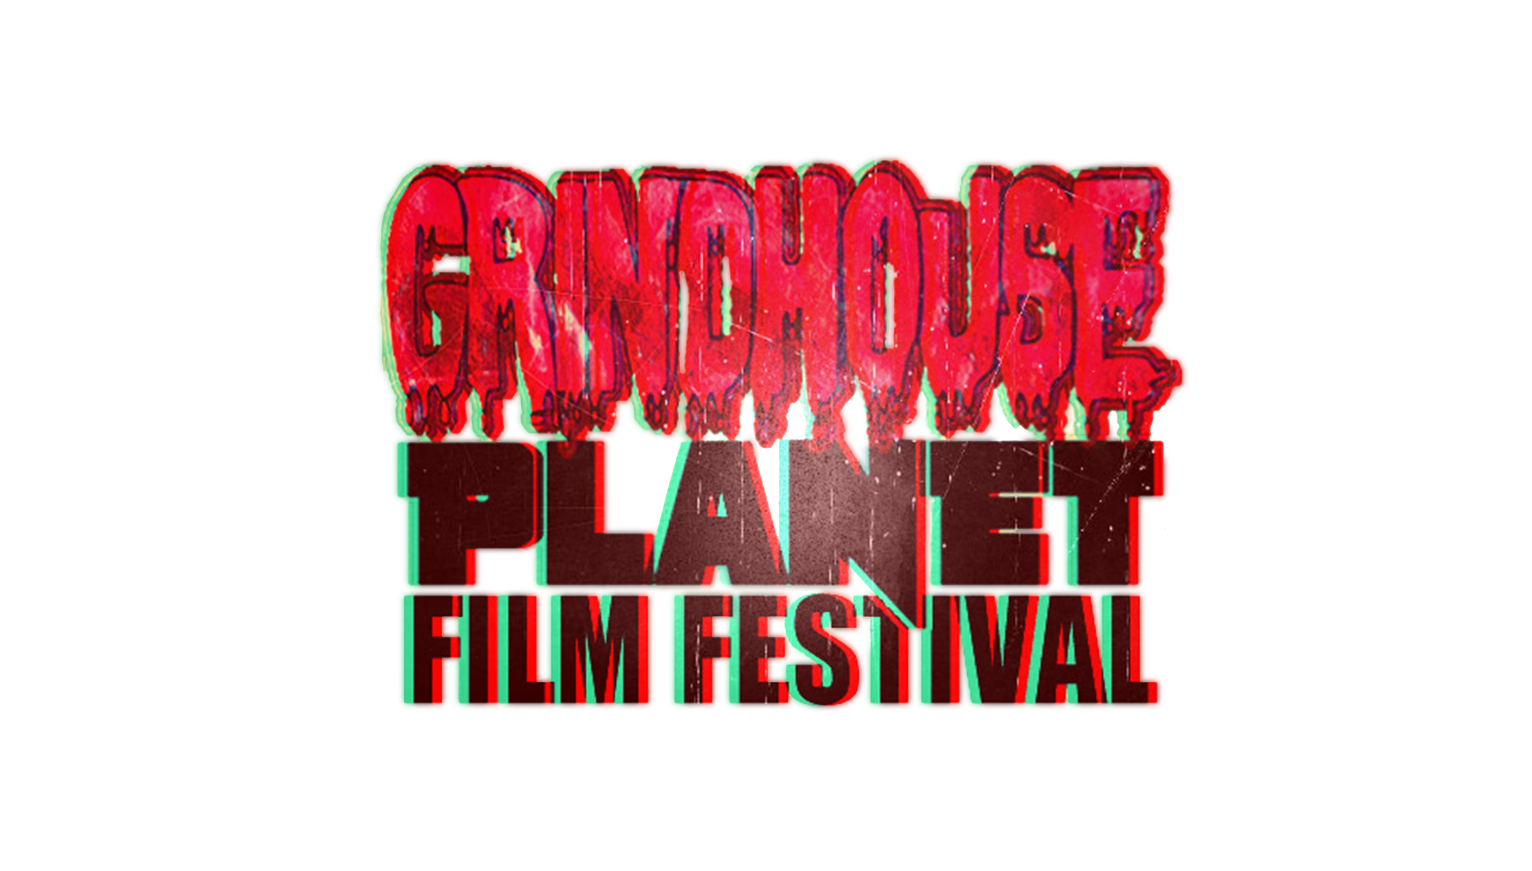 Grindhouse Planet Film Festival Selection 2017 Wht